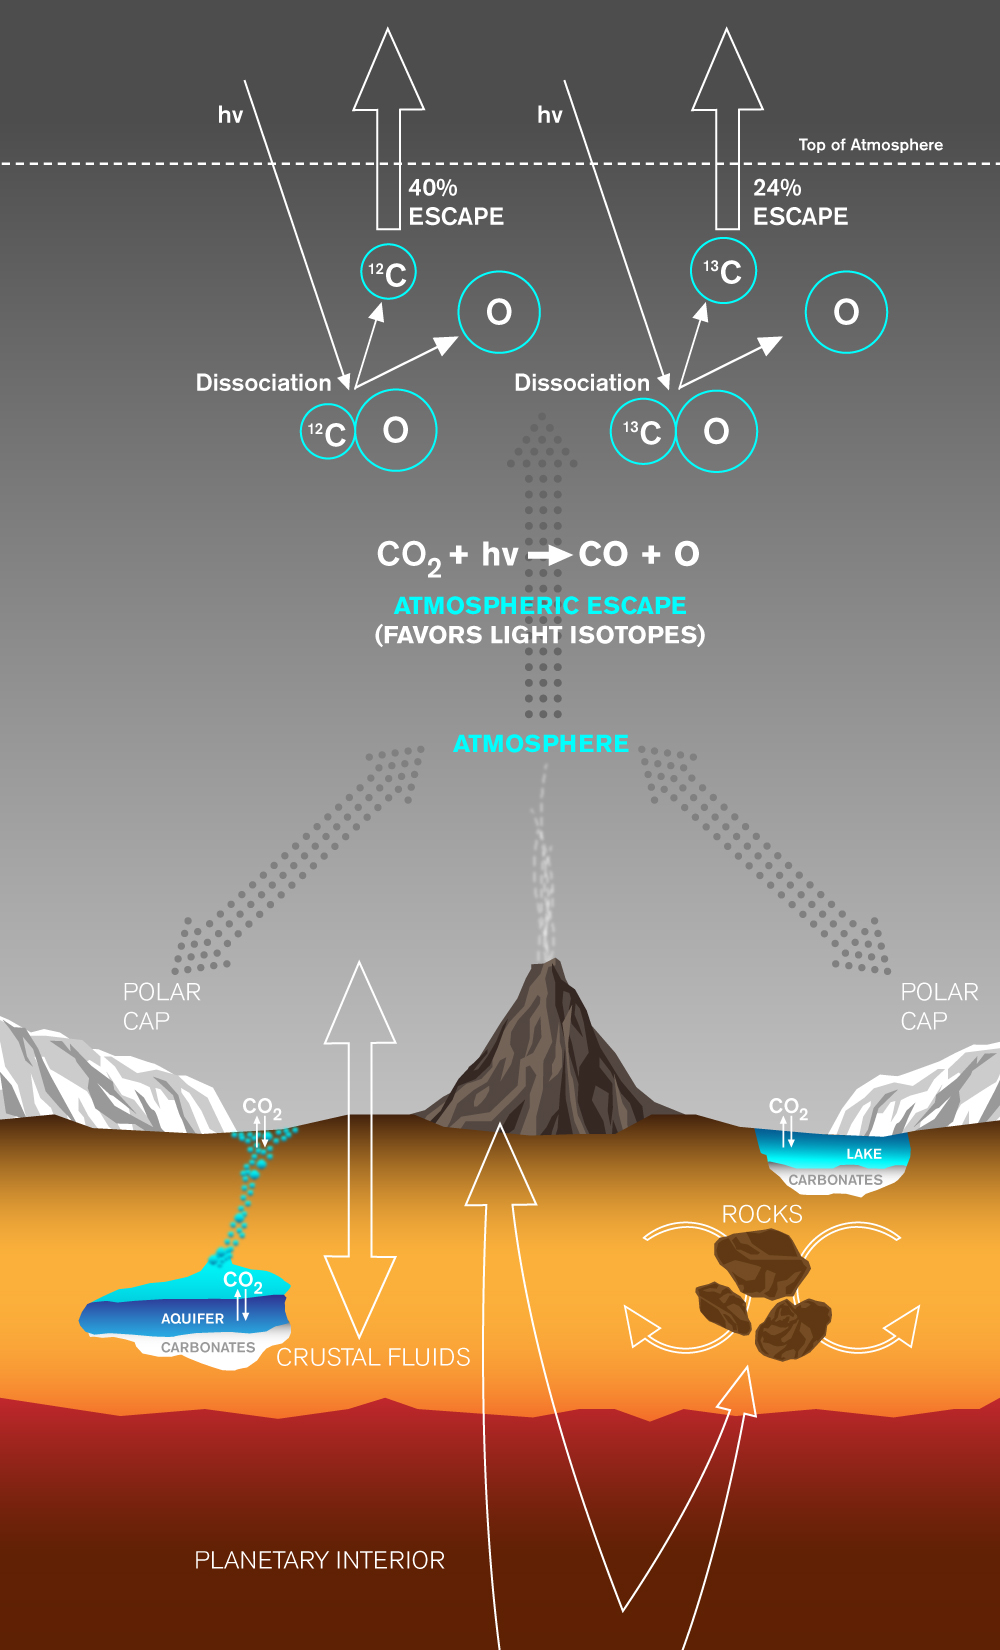 This graphic depicts paths by which carbon has been exchanged among Martian interior, surface rocks, polar caps, waters and atmosphere, and also depicts a mechanism by which it is lost from the atmosphere with a strong effect on isotope ratio.